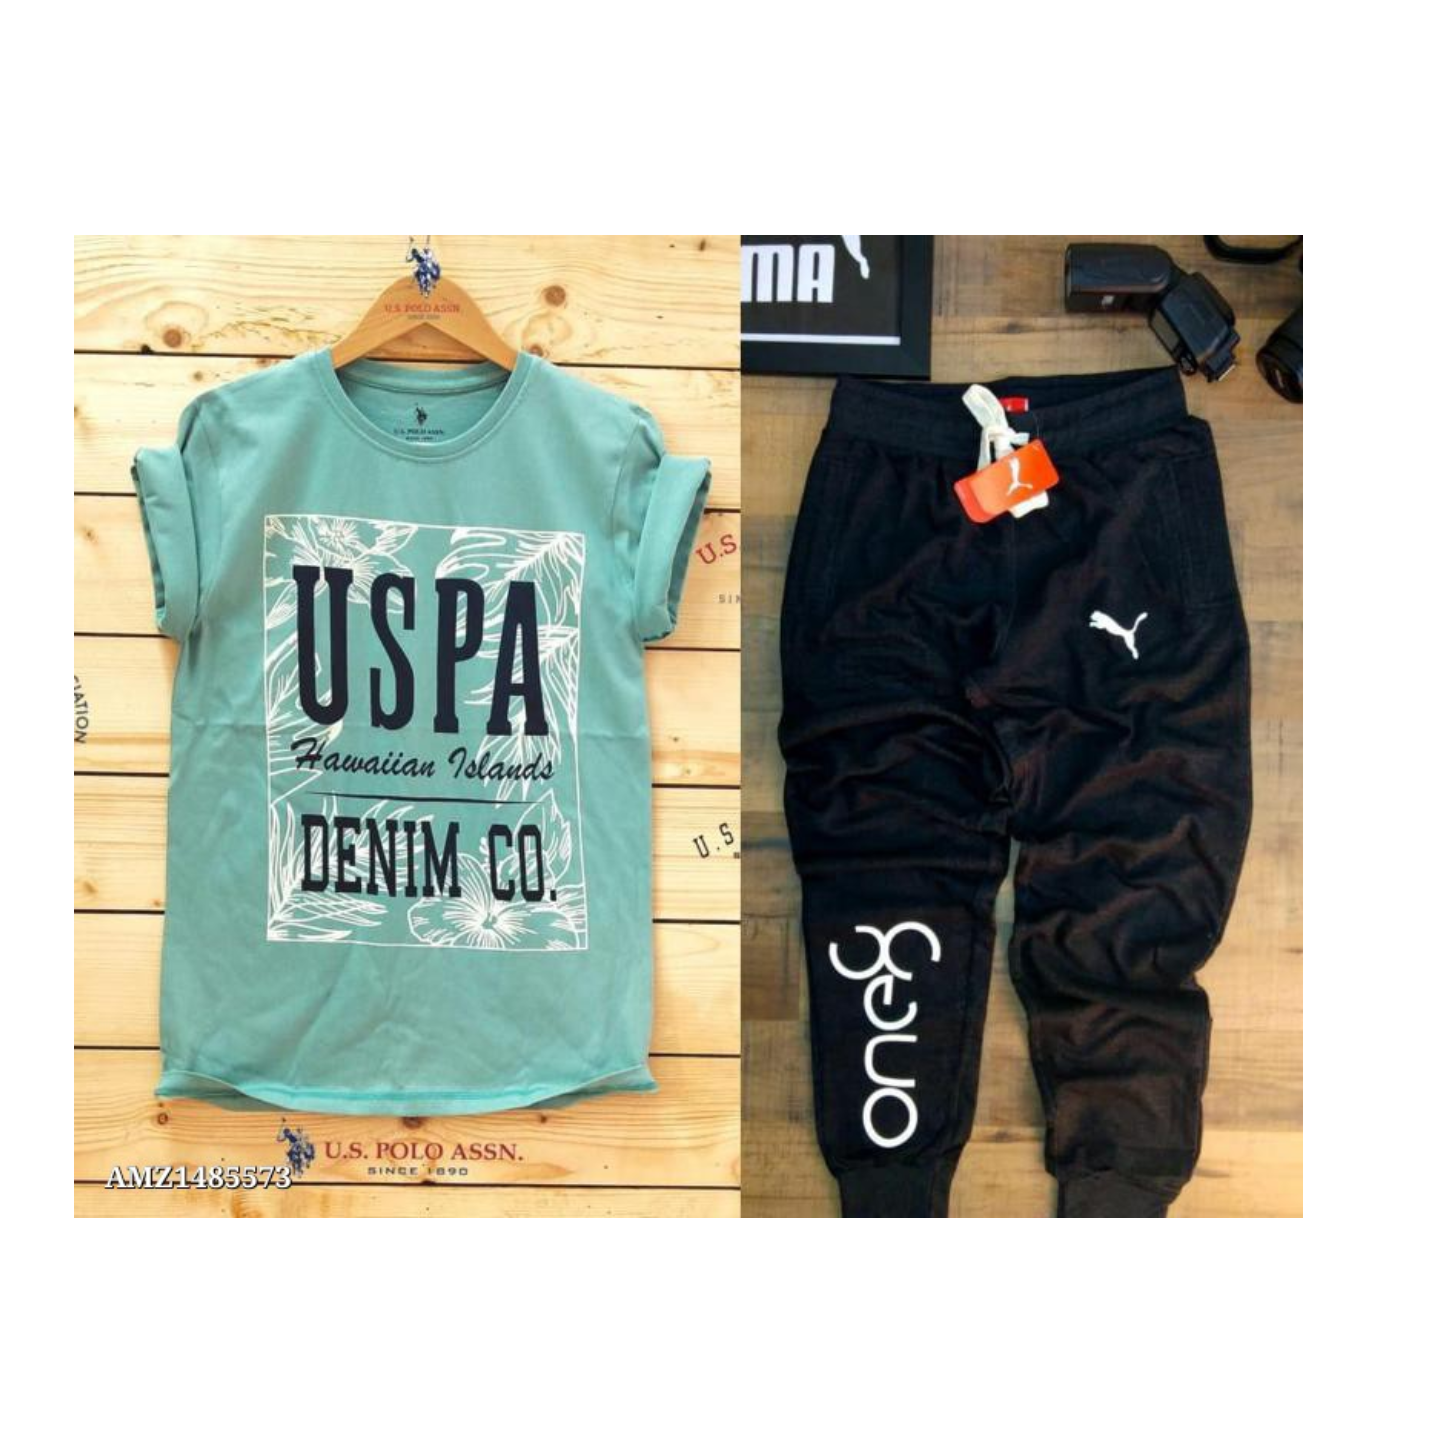 Branded T-Shirt and Track pant combo